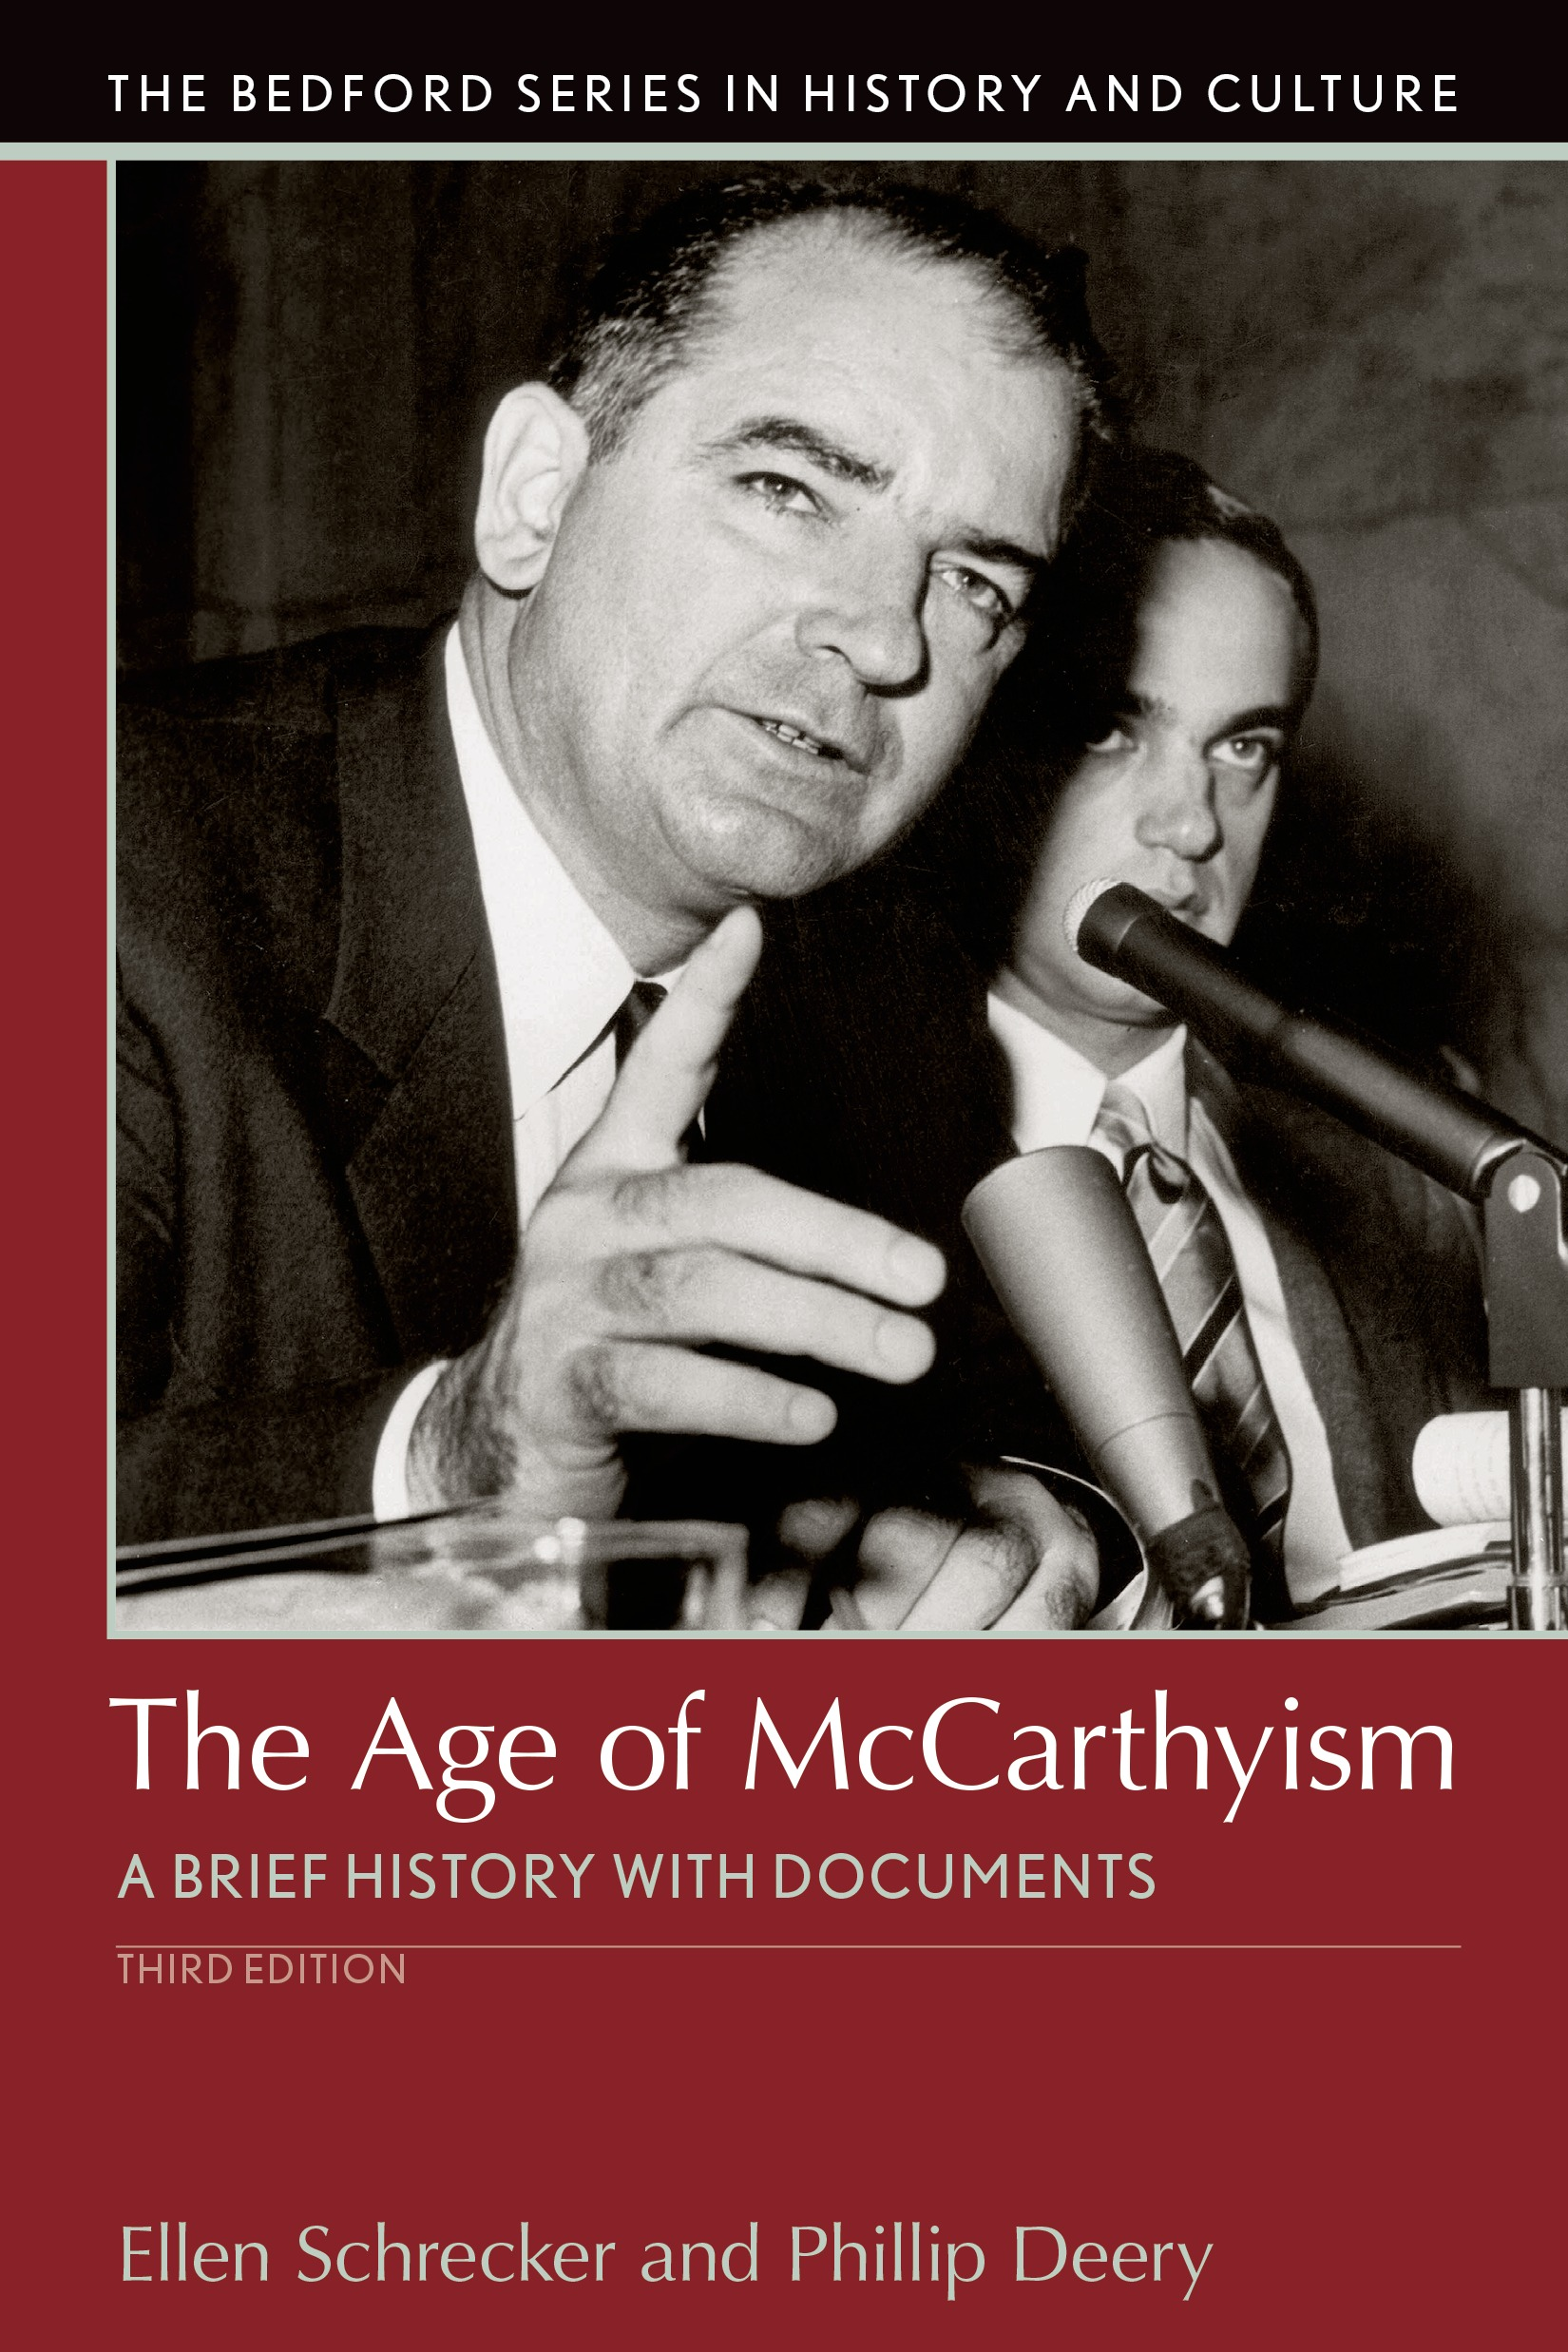 an essay on mccarthyism Mccarthyism was a time period throughout the 1940's and 1950's where america was overwhelmed with concerns about the threat of communism growing in.